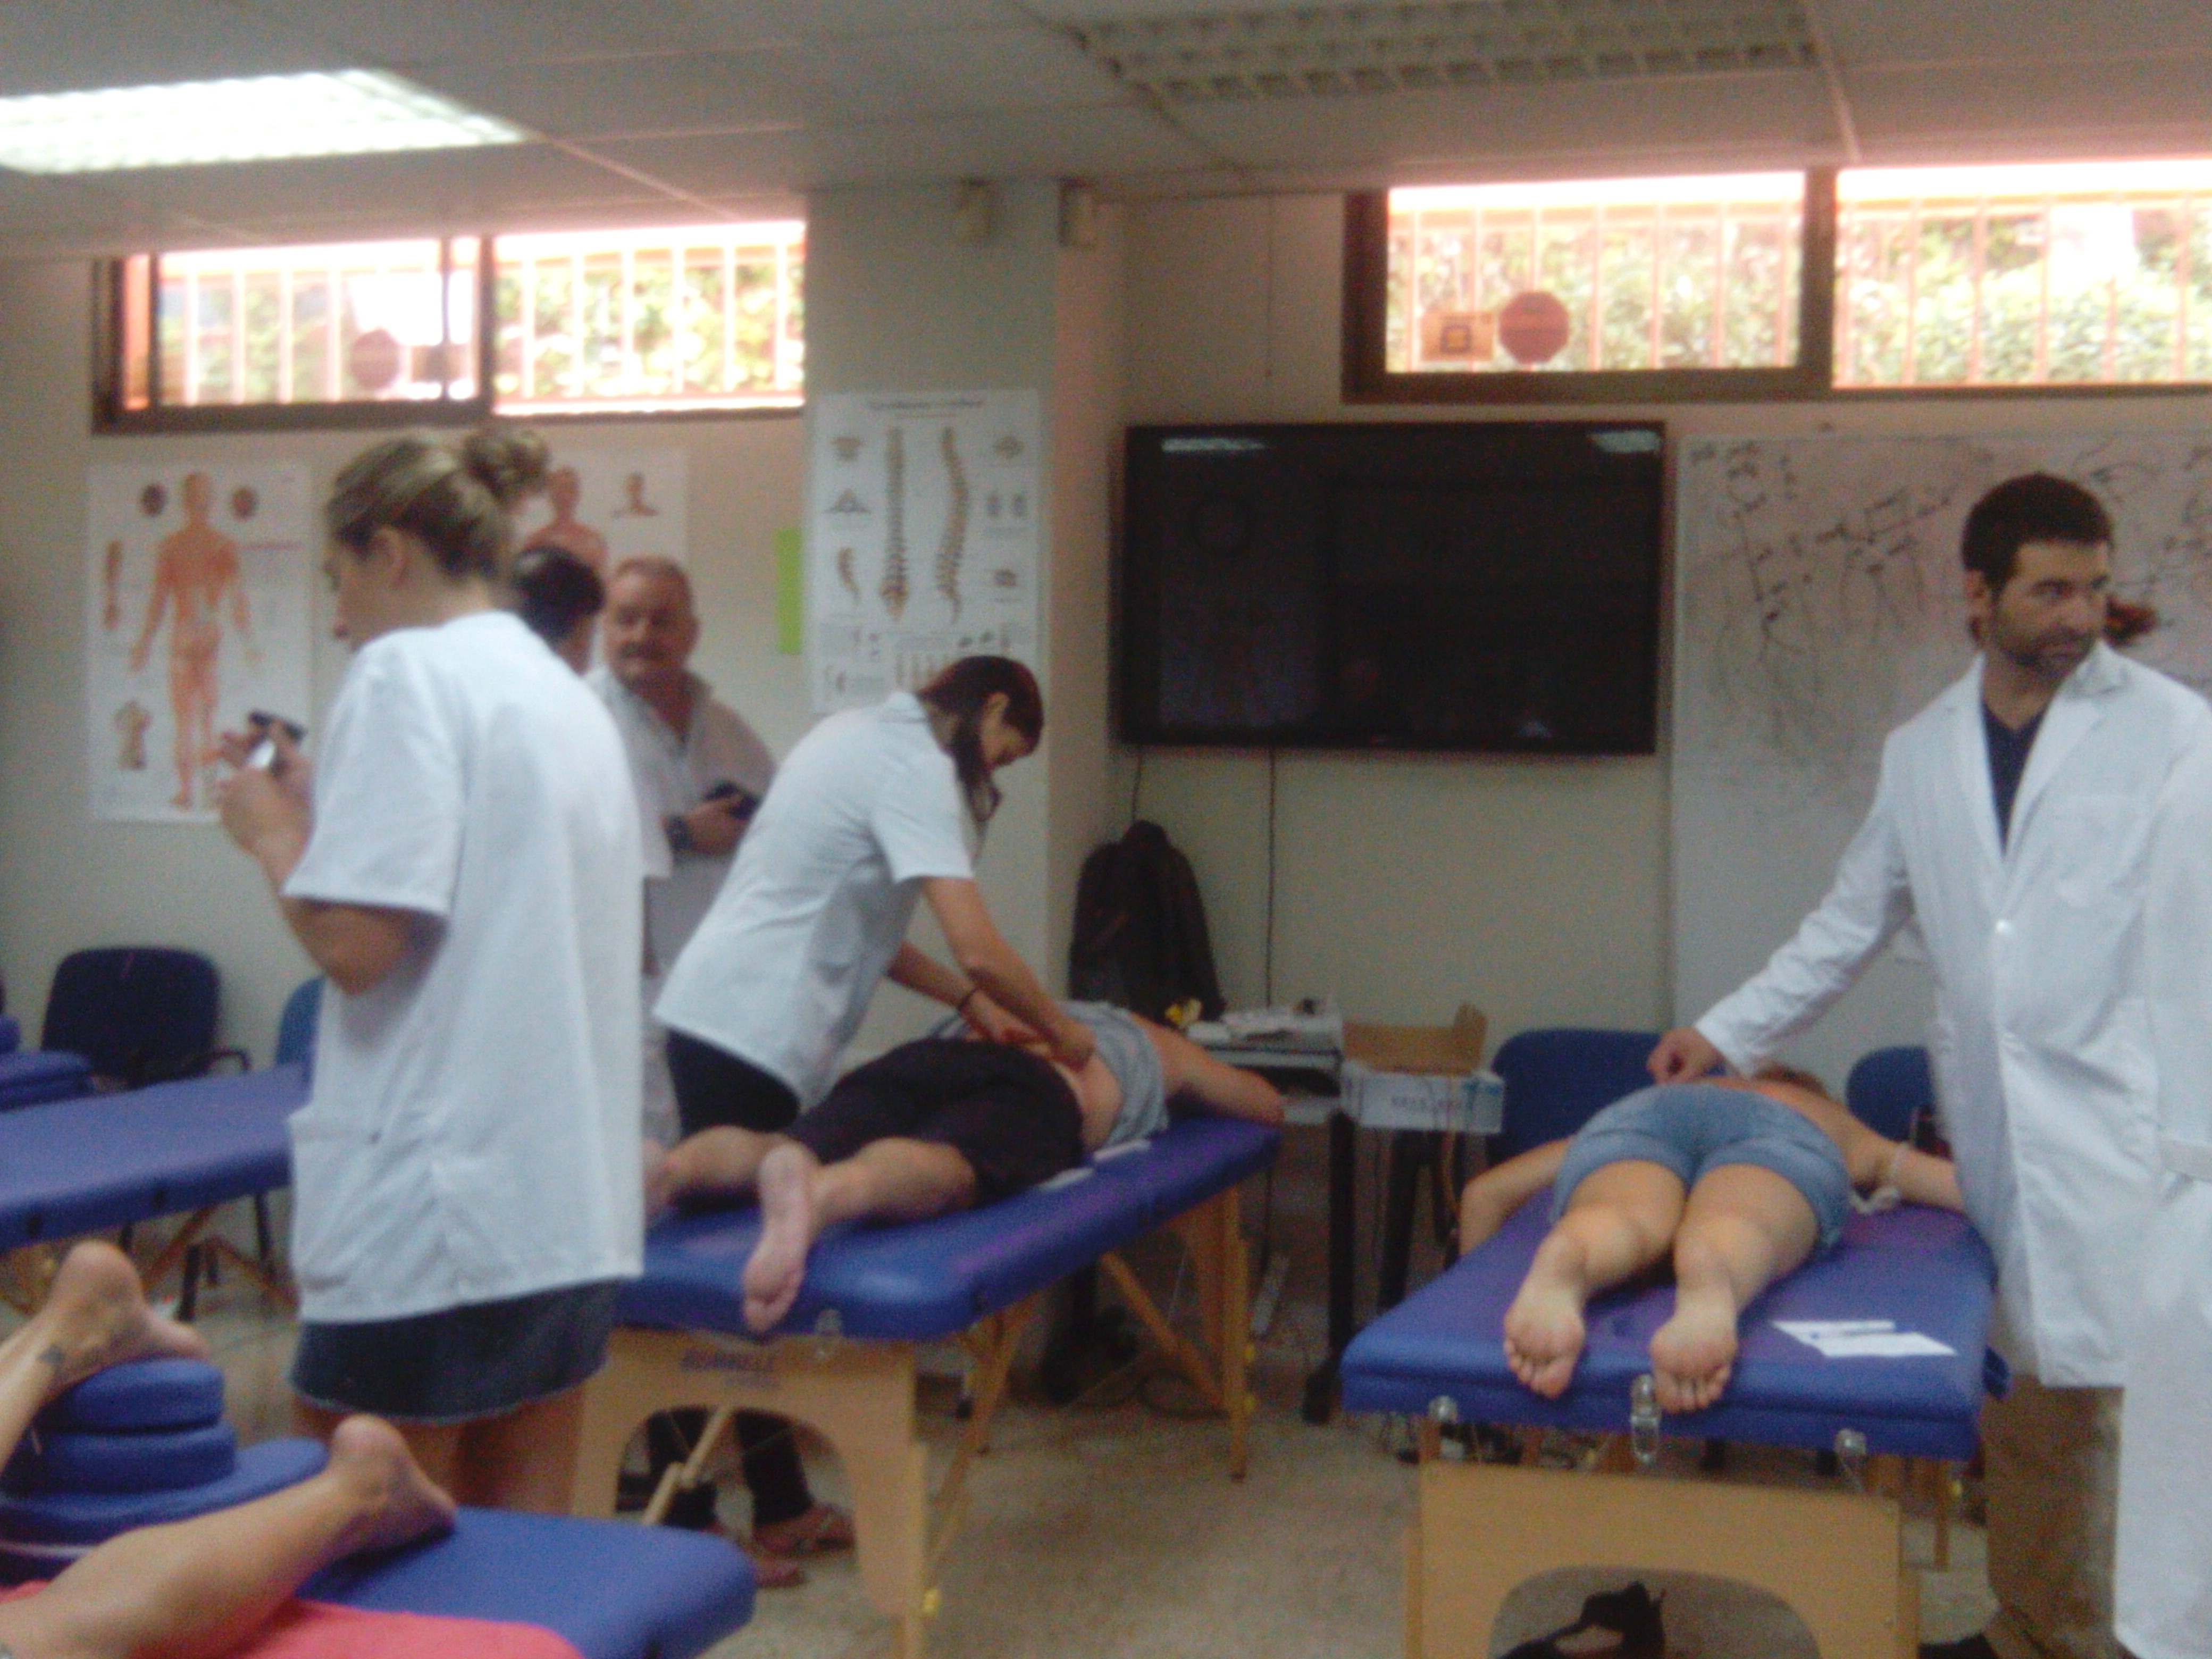 CURSO INTENSIVO DE ACUPUNTURA MADRID